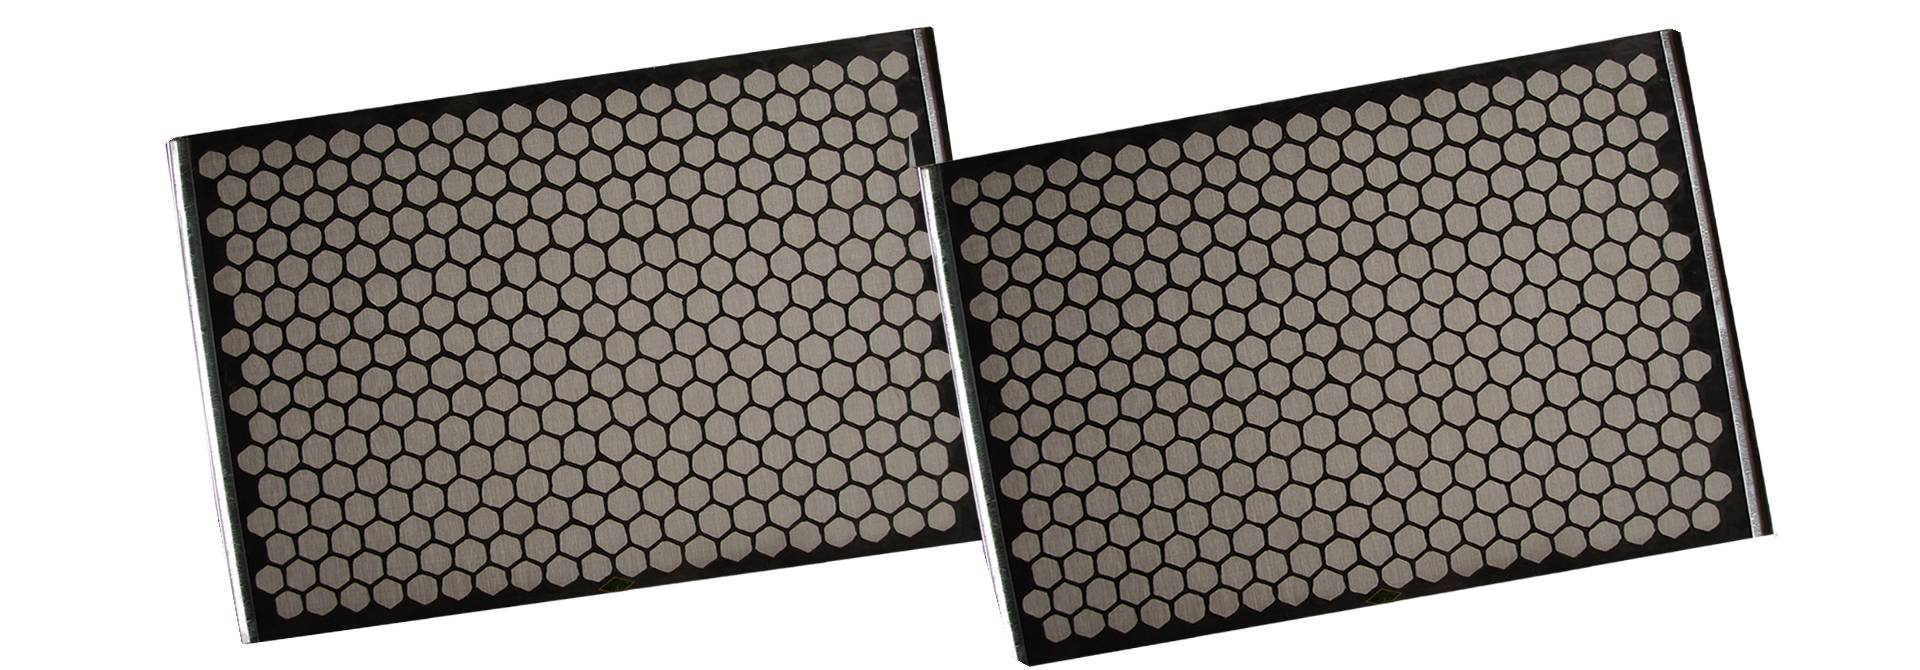 Two black flat shale shaker screens with hook strips.